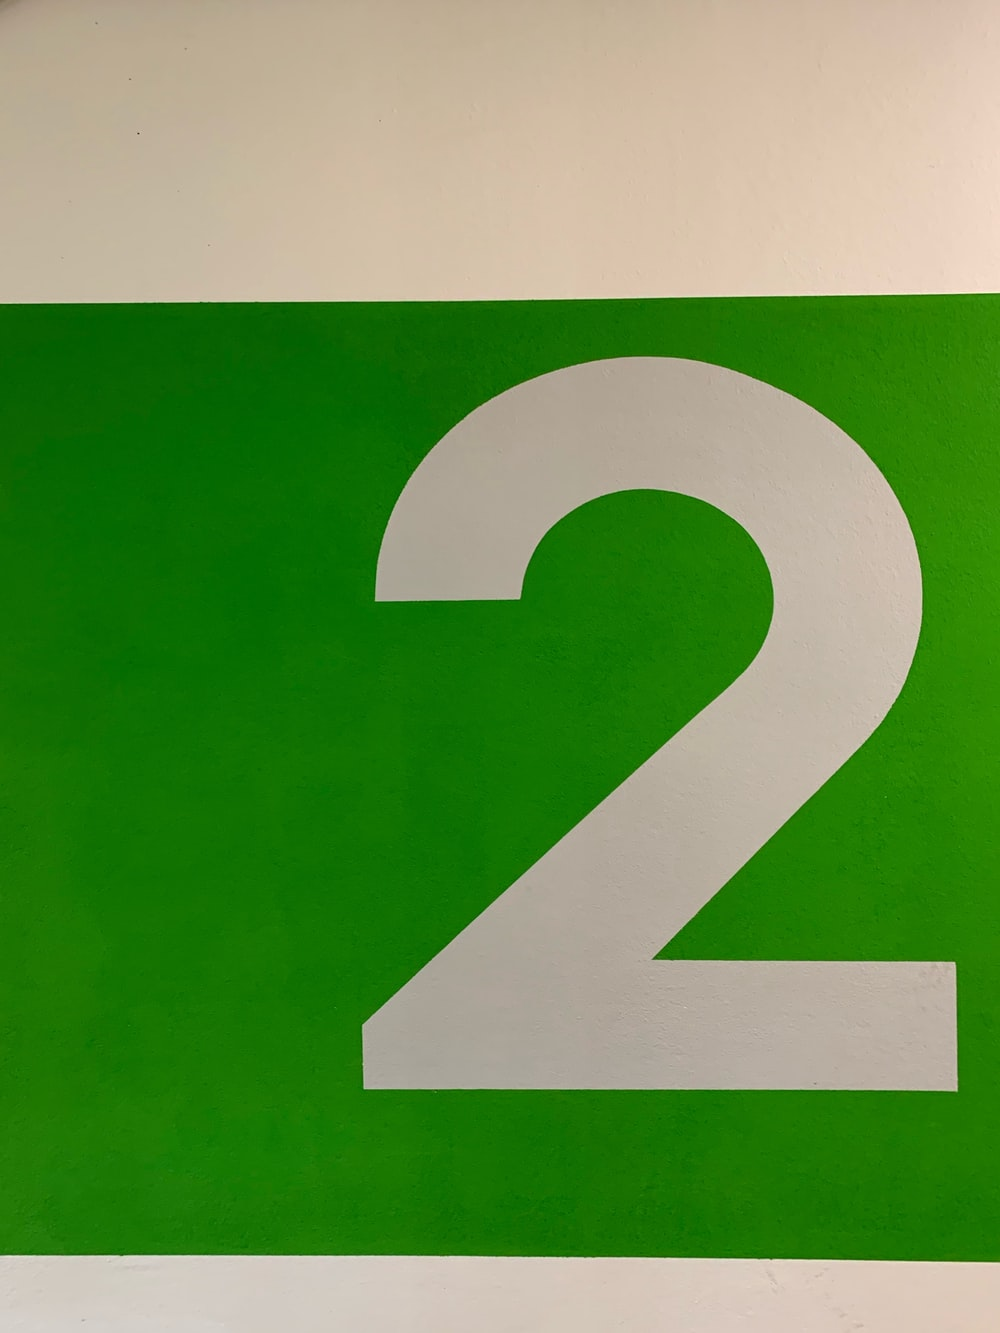 green and white 2 number